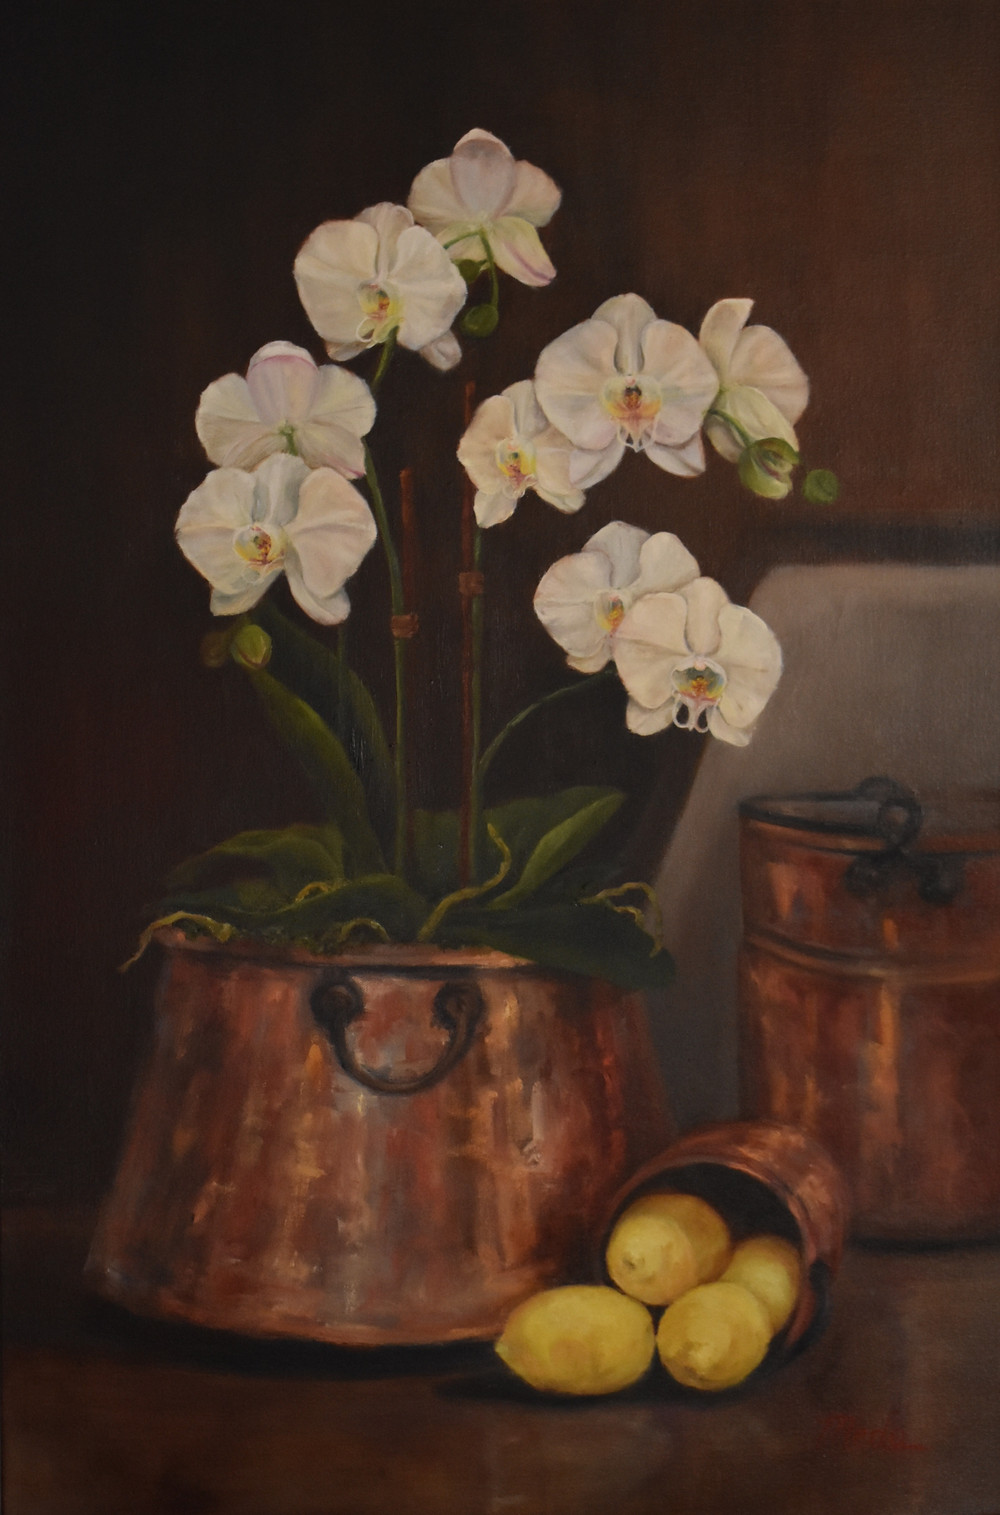 Copper Pots and Orchids